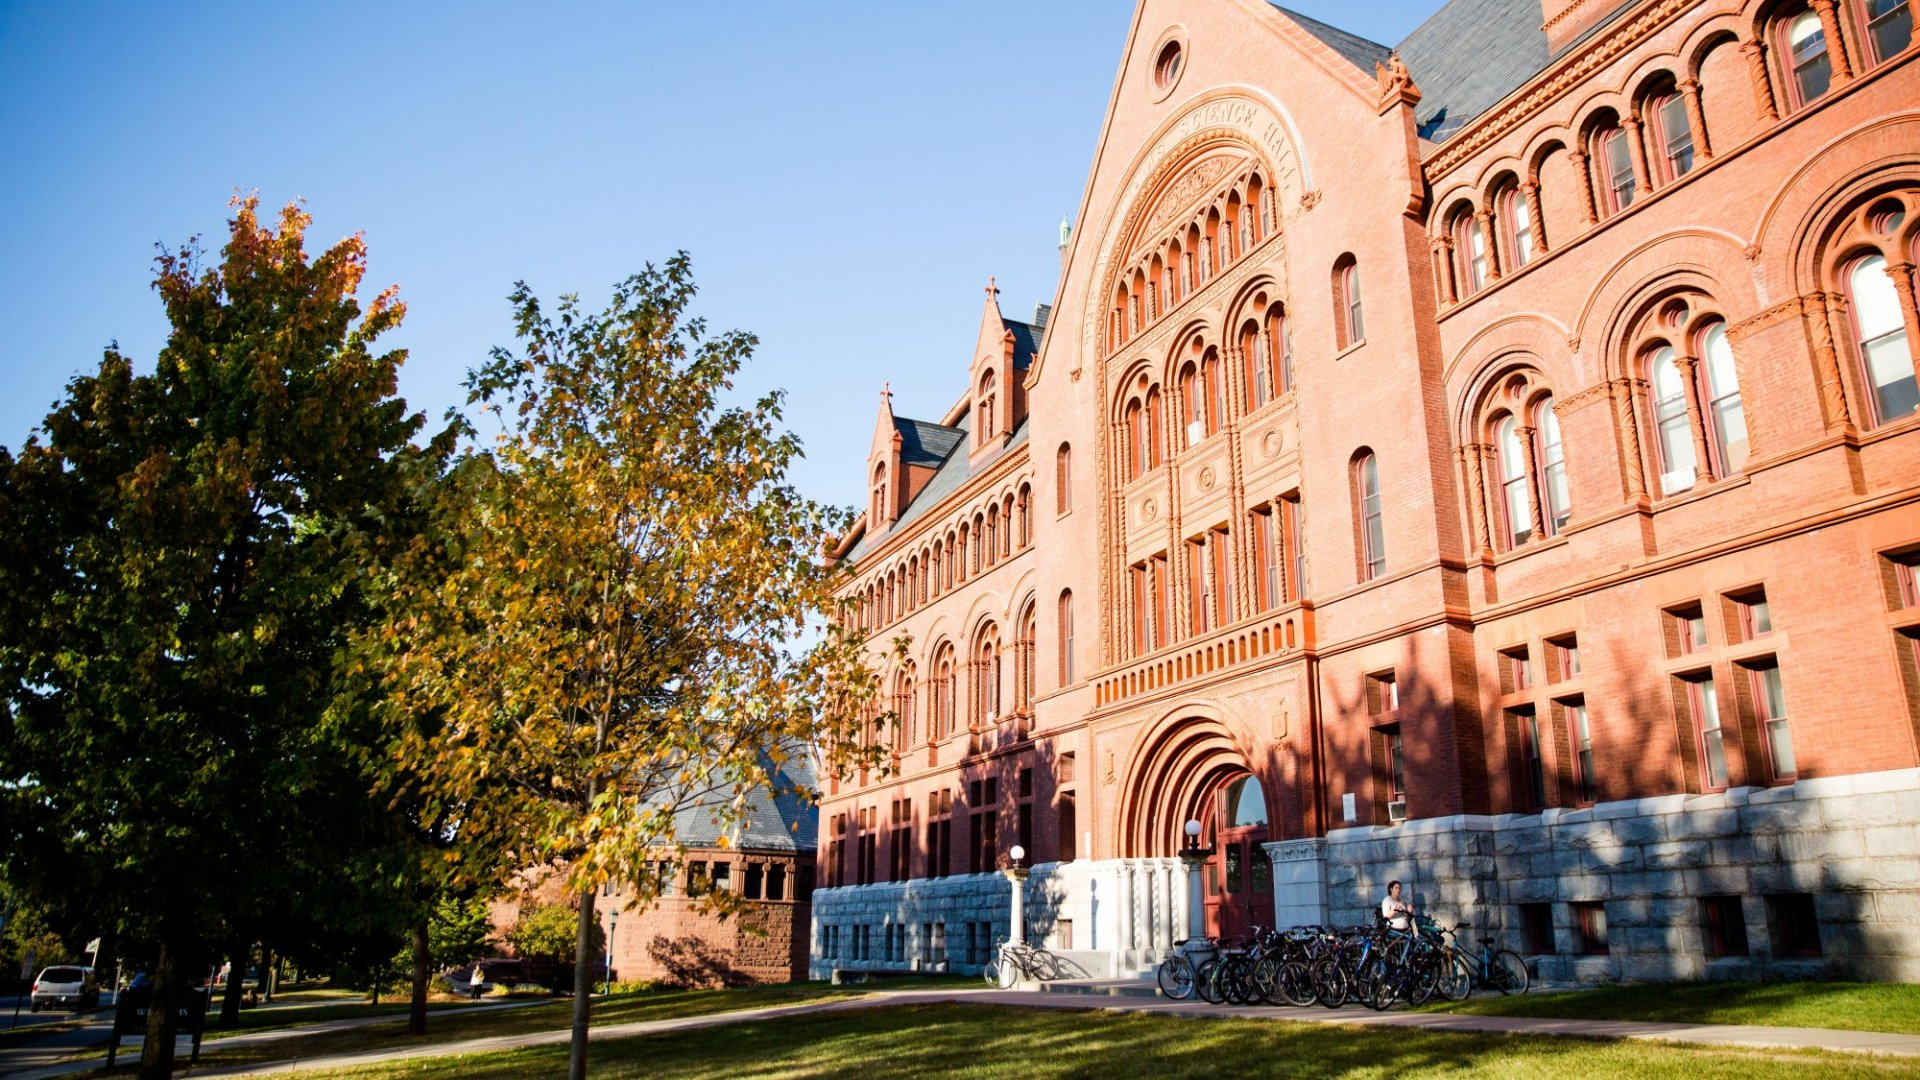 25 Universities That Produce the Most Startup Founders